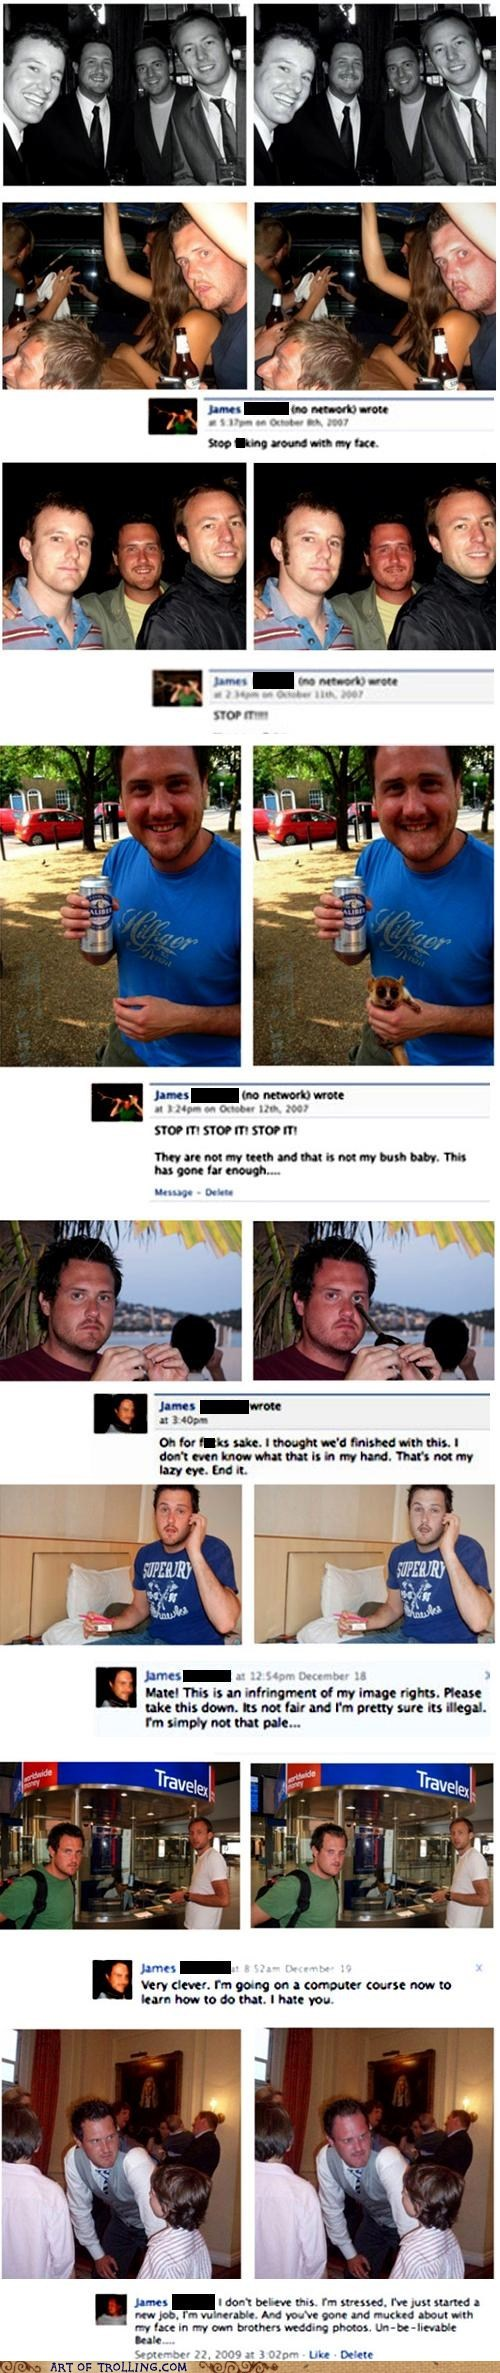 facebook harassment photoshop - 6550112768